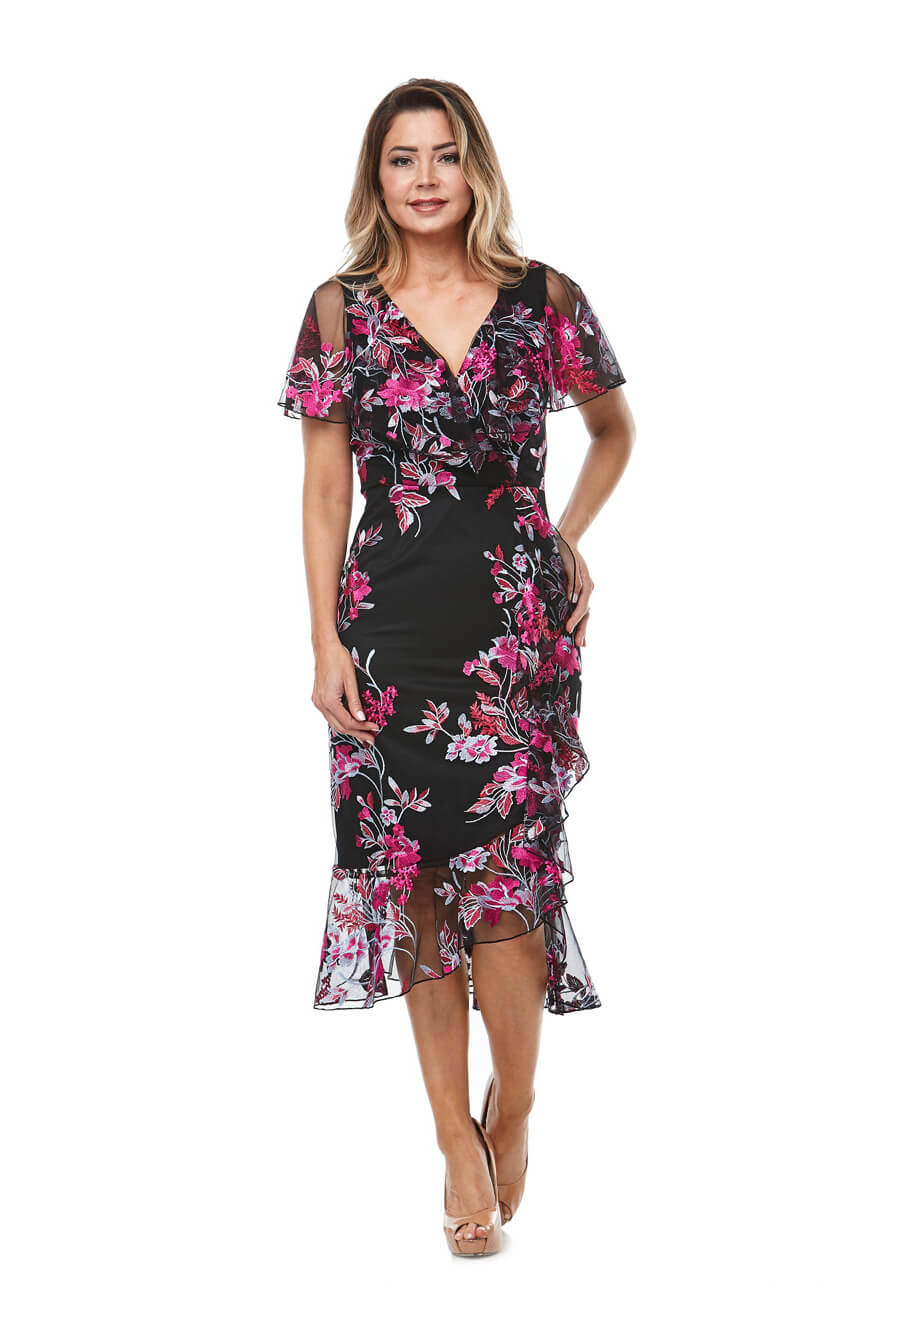 Cocktailwrap dress with angel sleeves & hot pink embroidery